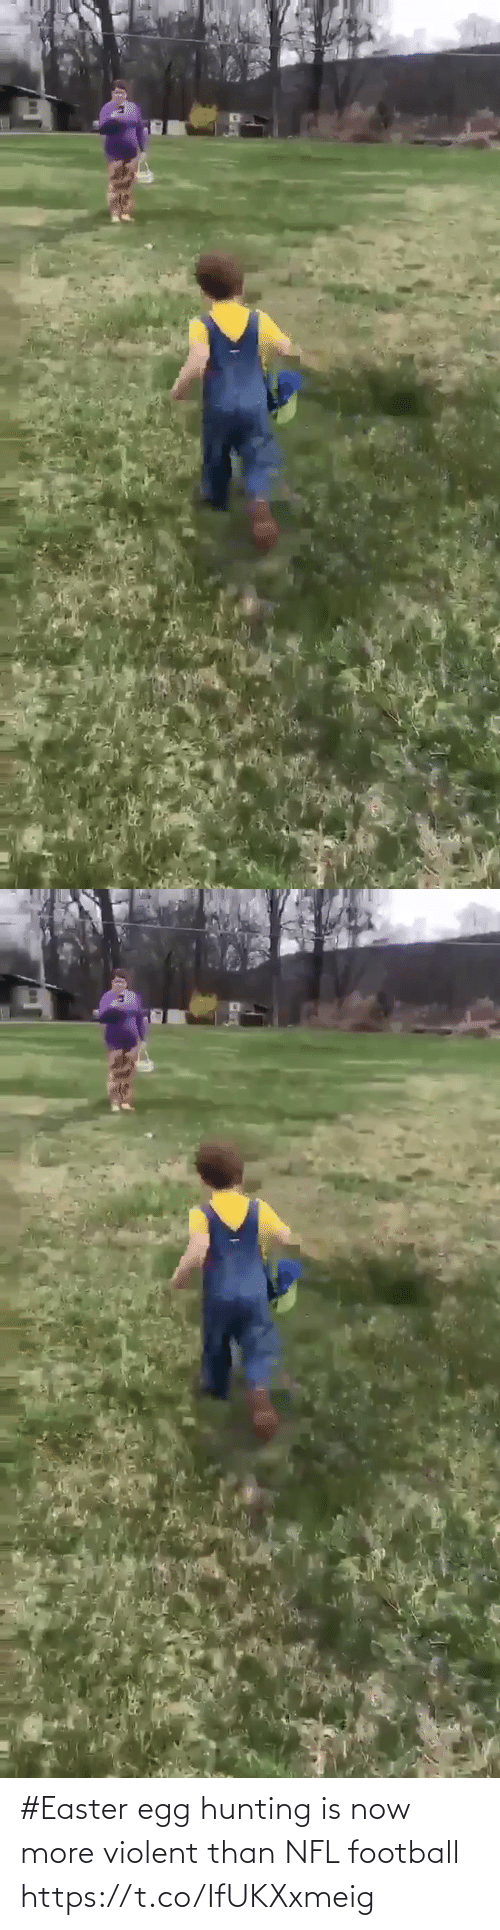 Hunting: #Easter egg hunting is now more violent than NFL football https://t.co/IfUKXxmeig